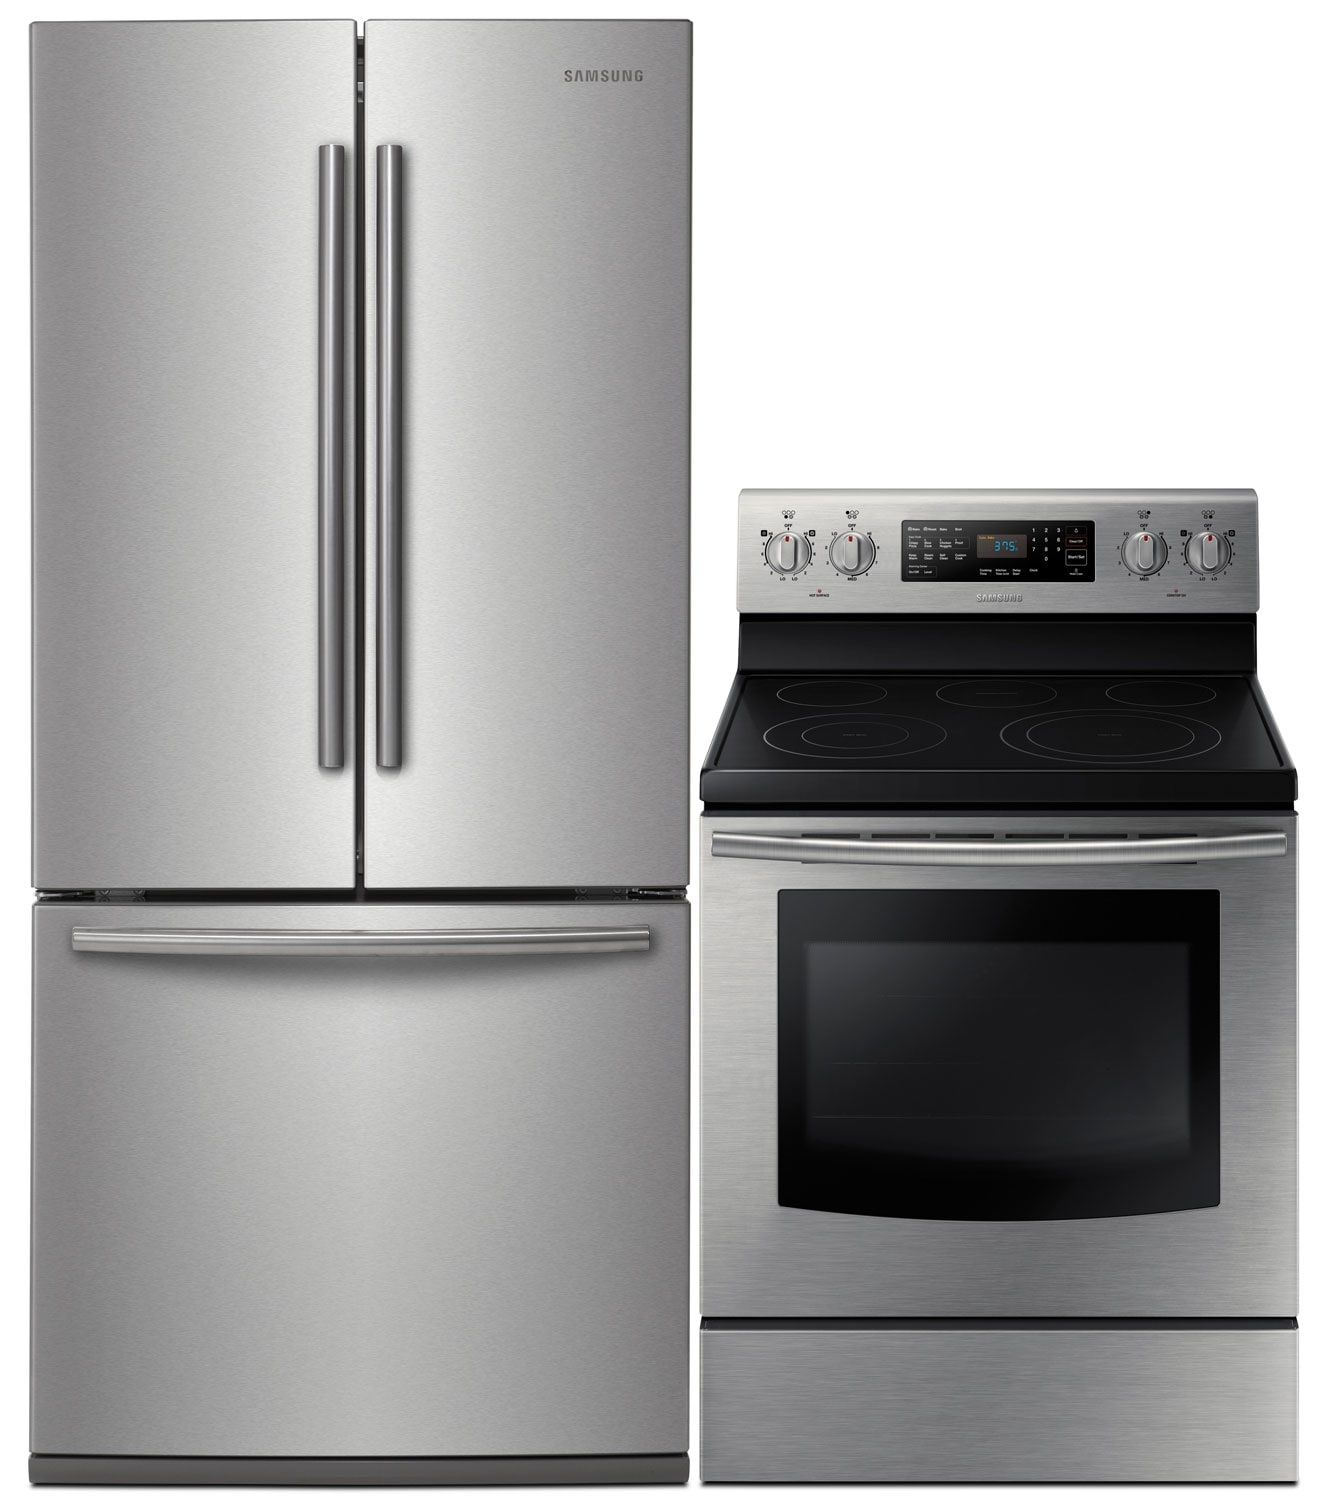 Cooking Products - Samsung 22 Cu. Ft. Refrigerator and 5.9 Cu. Ft. Electric Range